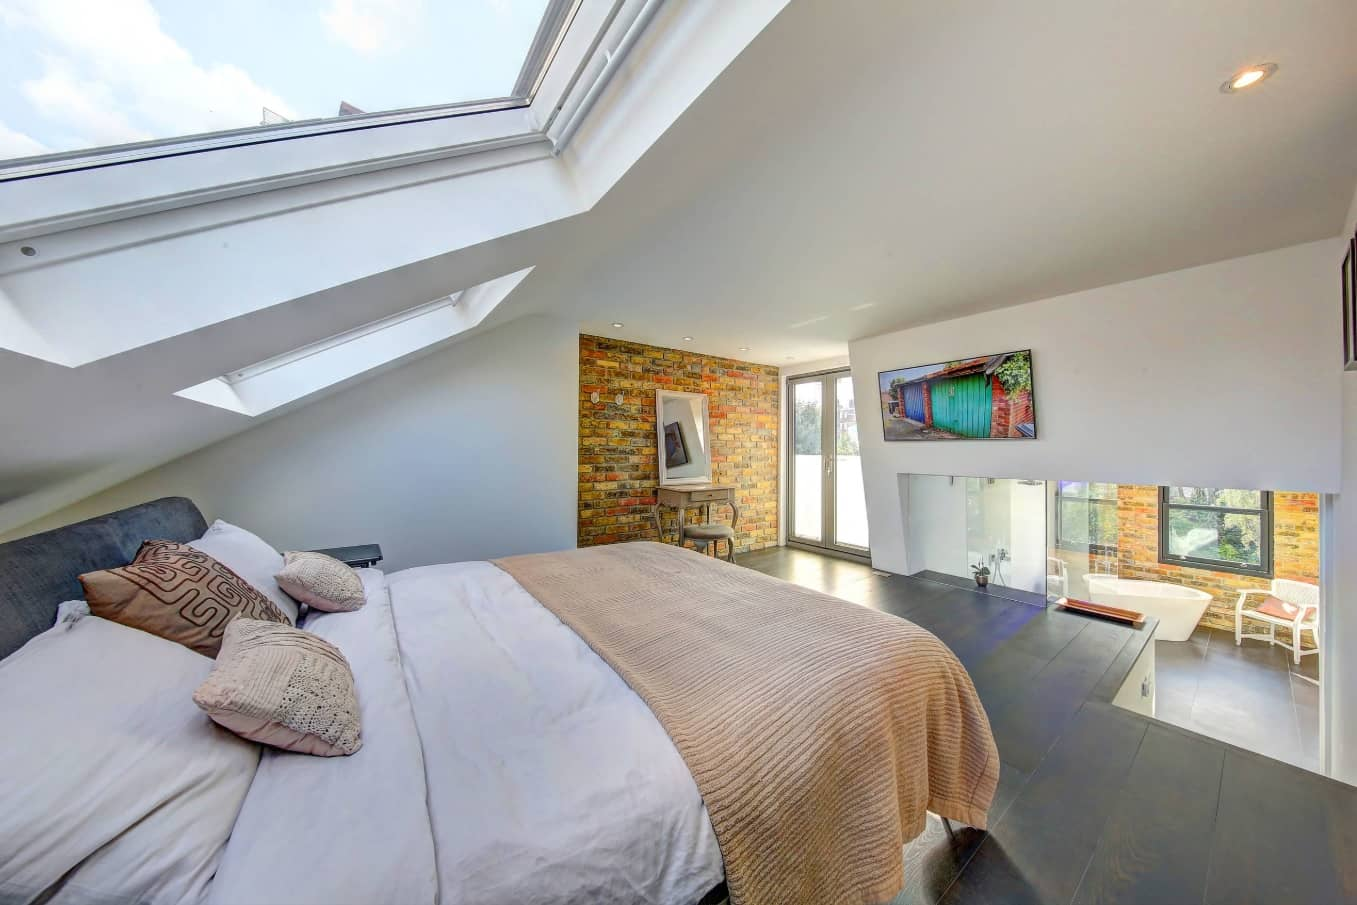 Unusual use of skylight and top pedestal bedroom zone